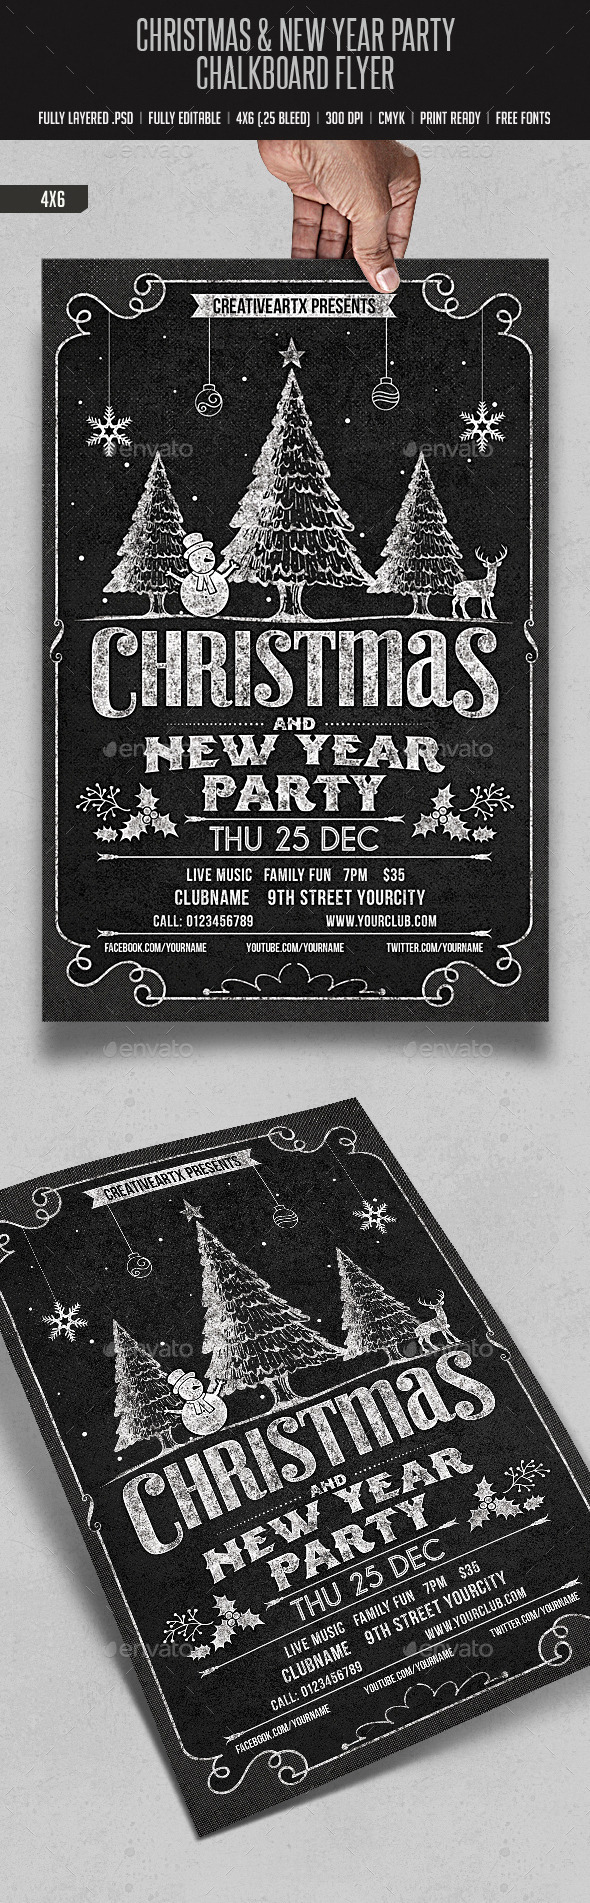 GraphicRiver Christmas & New Year Party Chalk Board Flyer 9469936